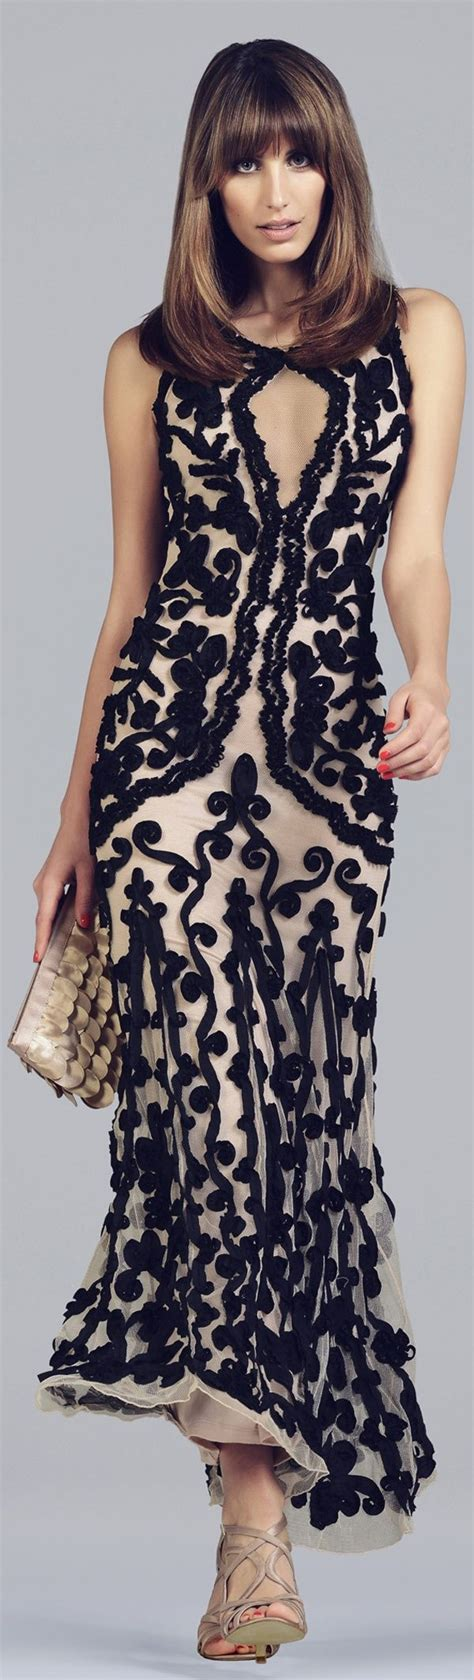 fashion trends for women over 50 spring dresses for women over 50 com 2013 05